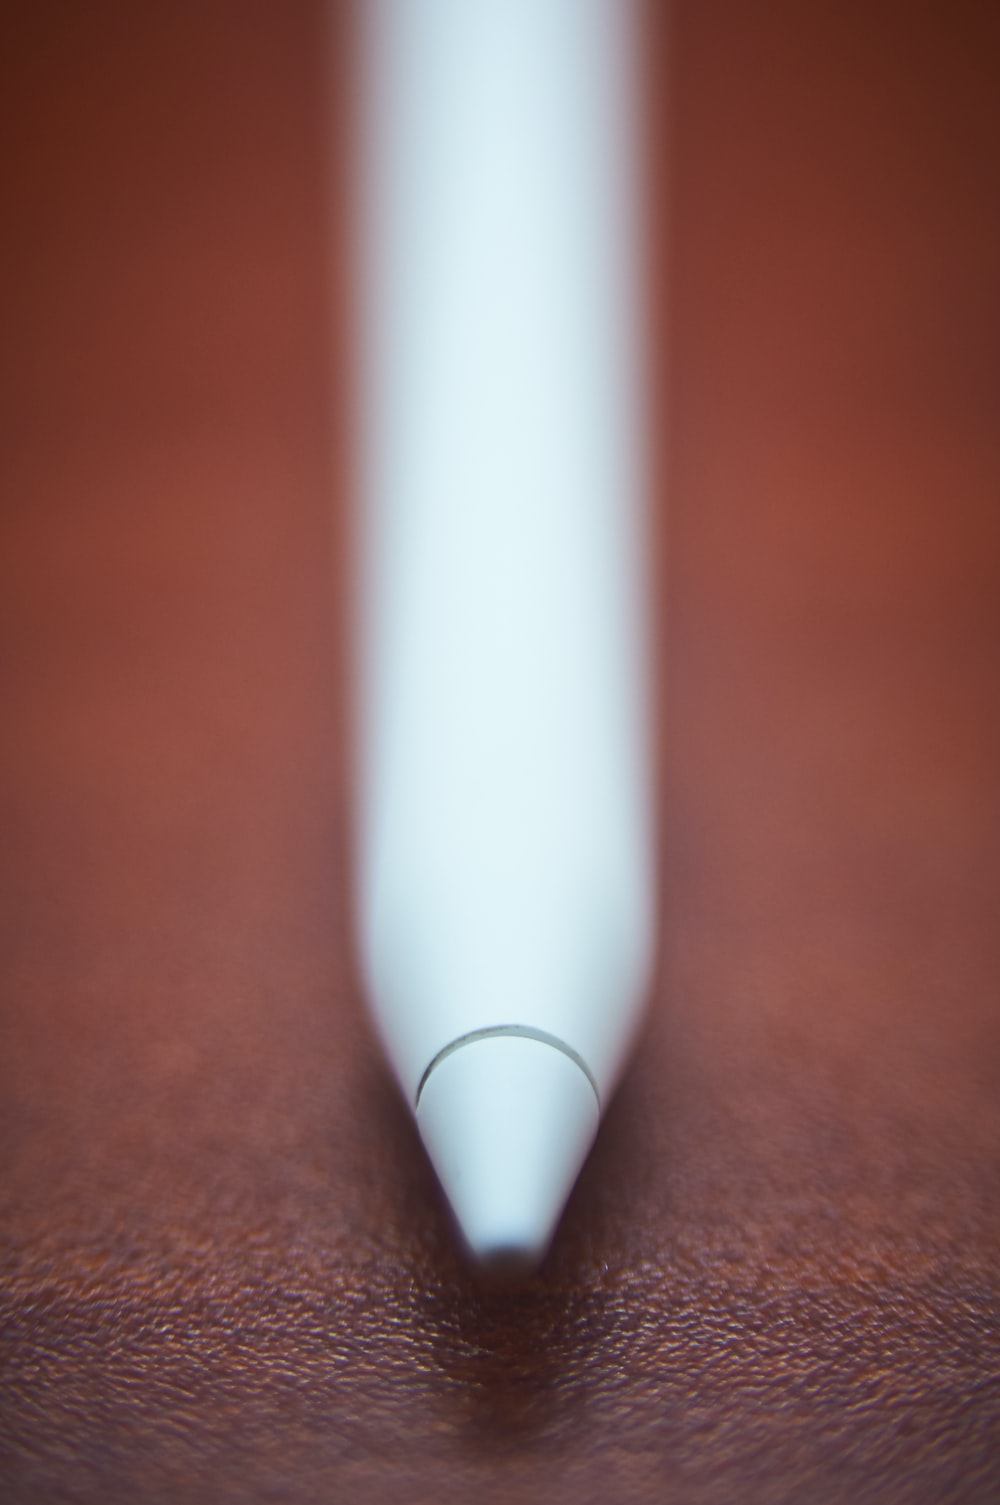 white pen on brown wooden table